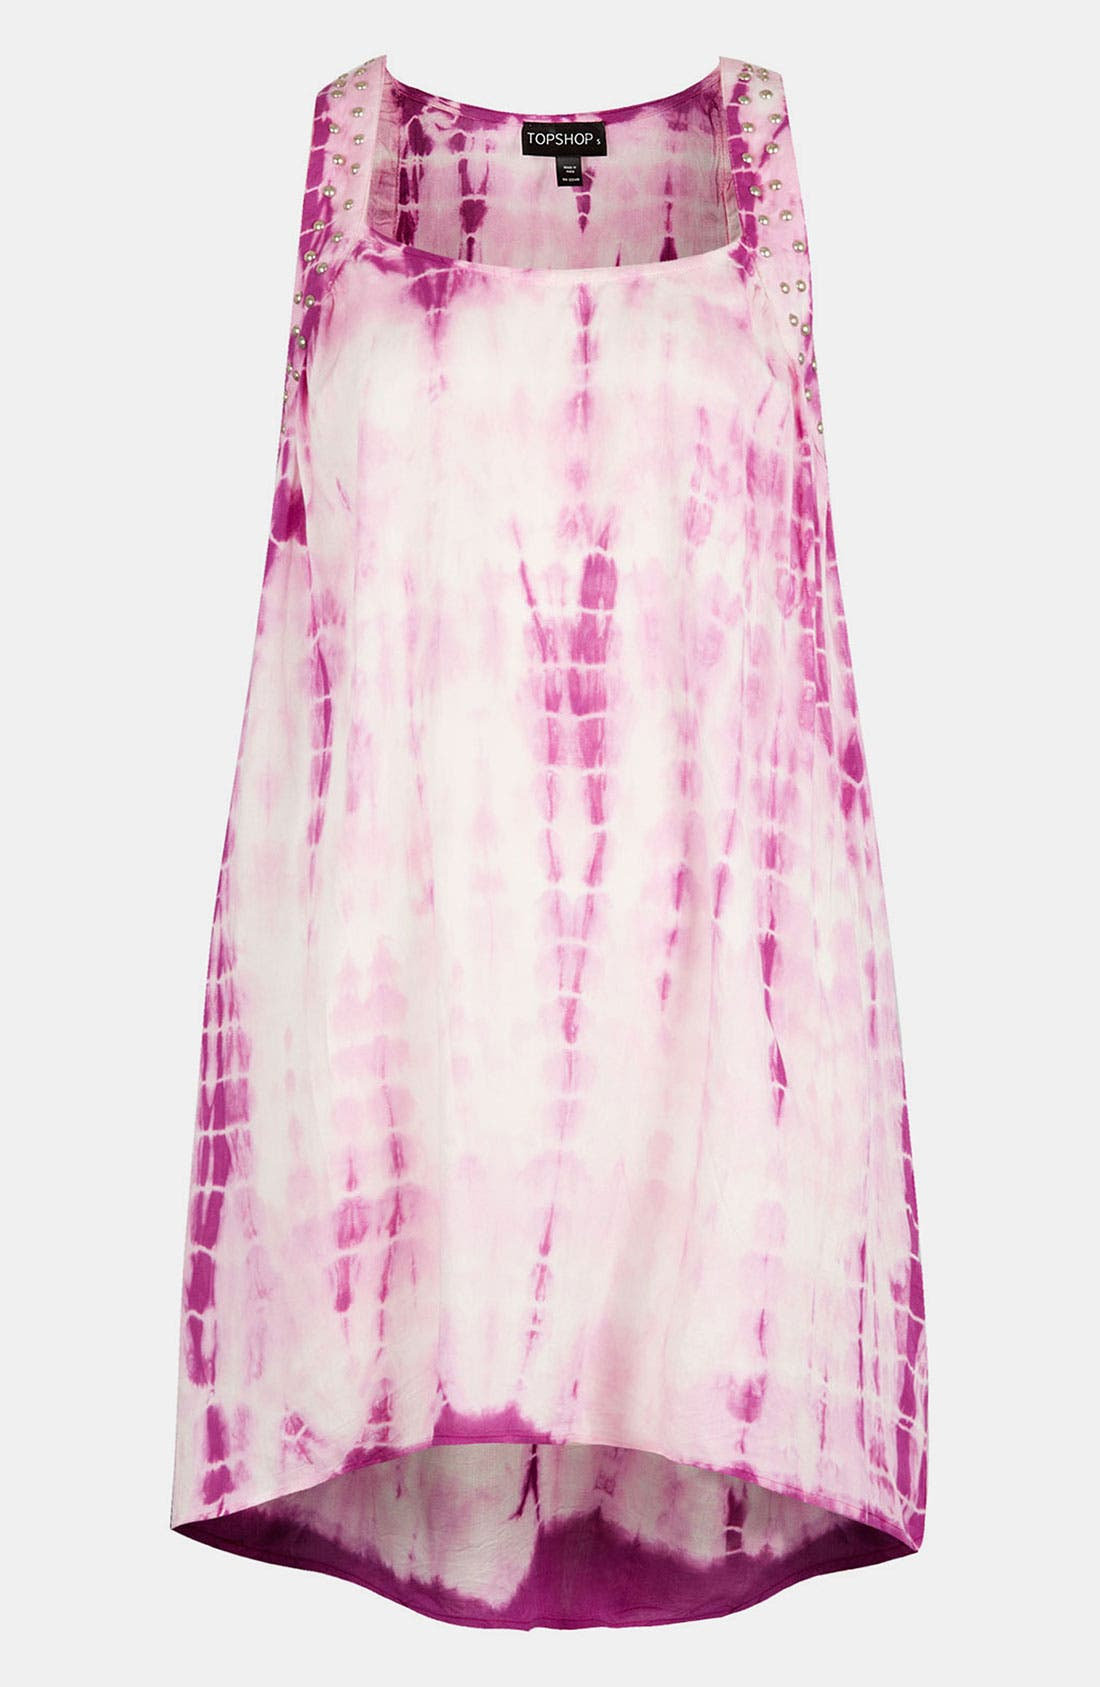 Alternate Image 1 Selected - Topshop Tie Dye Cover-Up